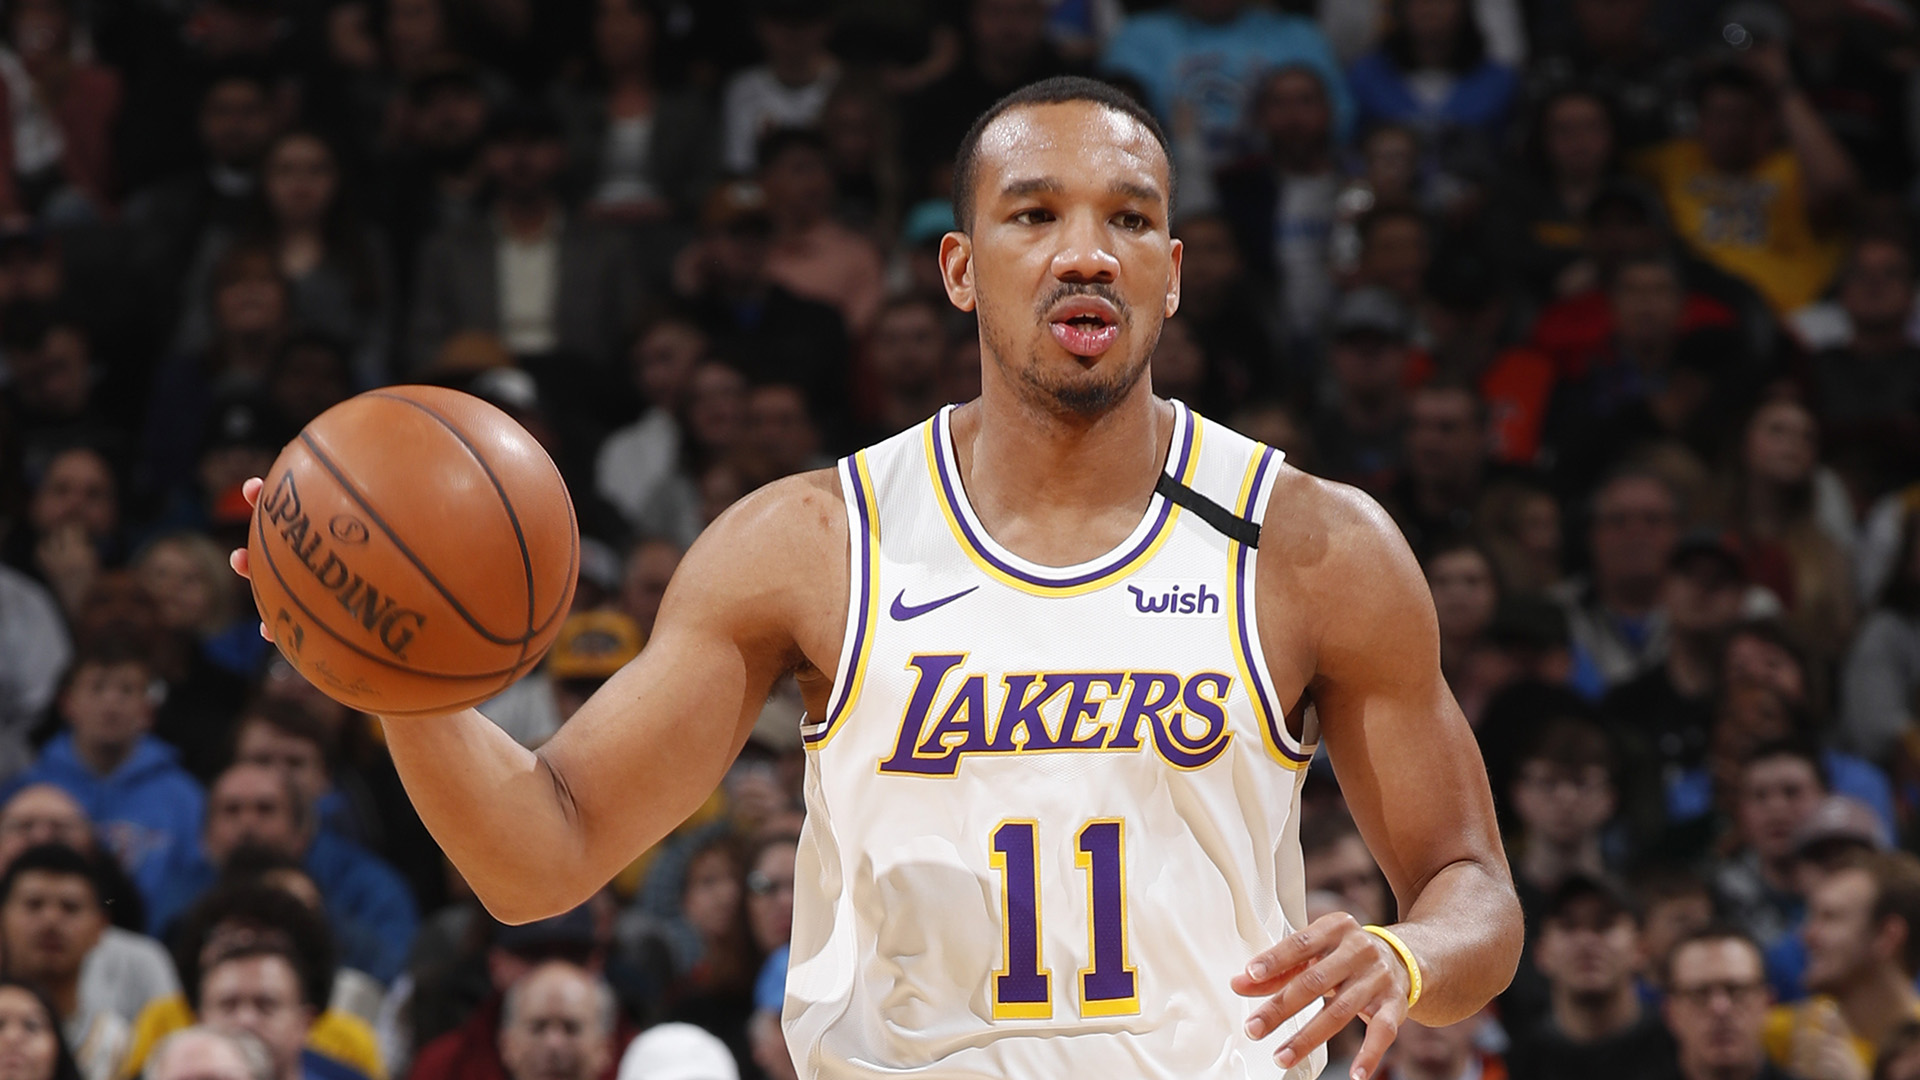 Lakers claim Avery Bradley, who opted out before title win